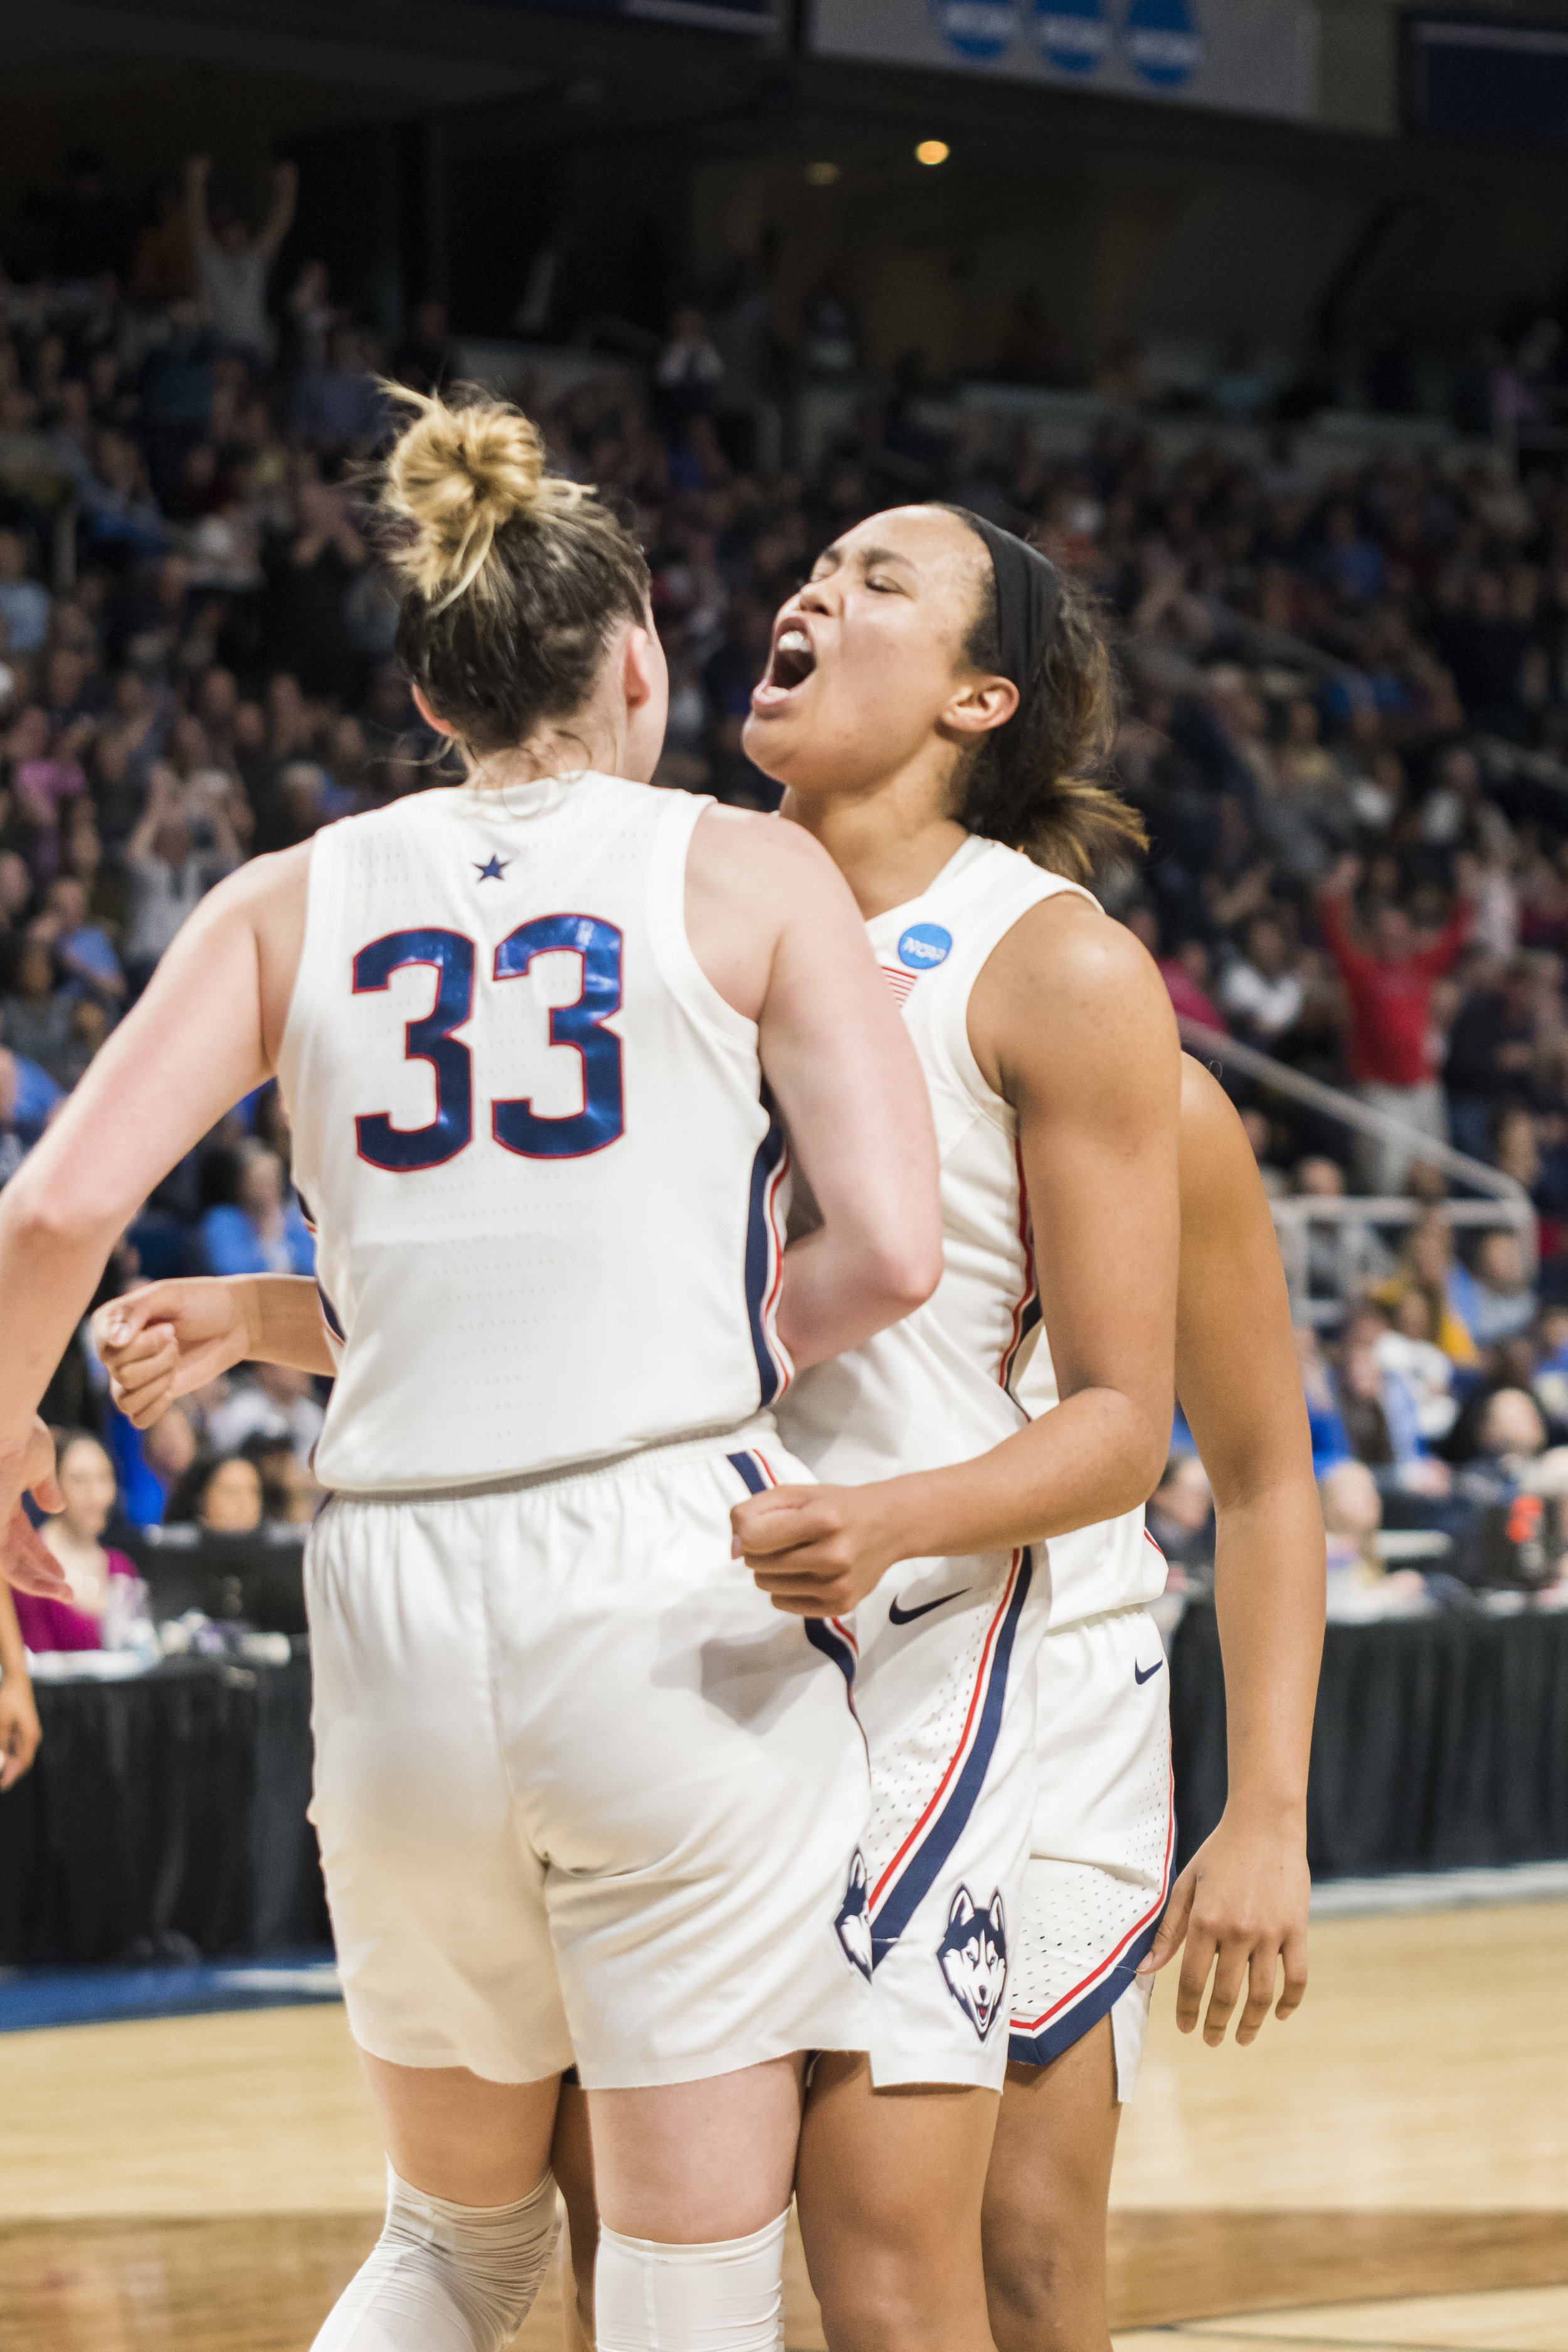 The Huskies continue their march down the tournament as they win against the UCLA Bruins 69-61 on Friday. Napheesa Collier (24), Crystal Dangerfield (5), and Christyn Williams (23) lead the game with 25, 15, and 14 points each. (Photo by Eric Wang/The Daily Campus)